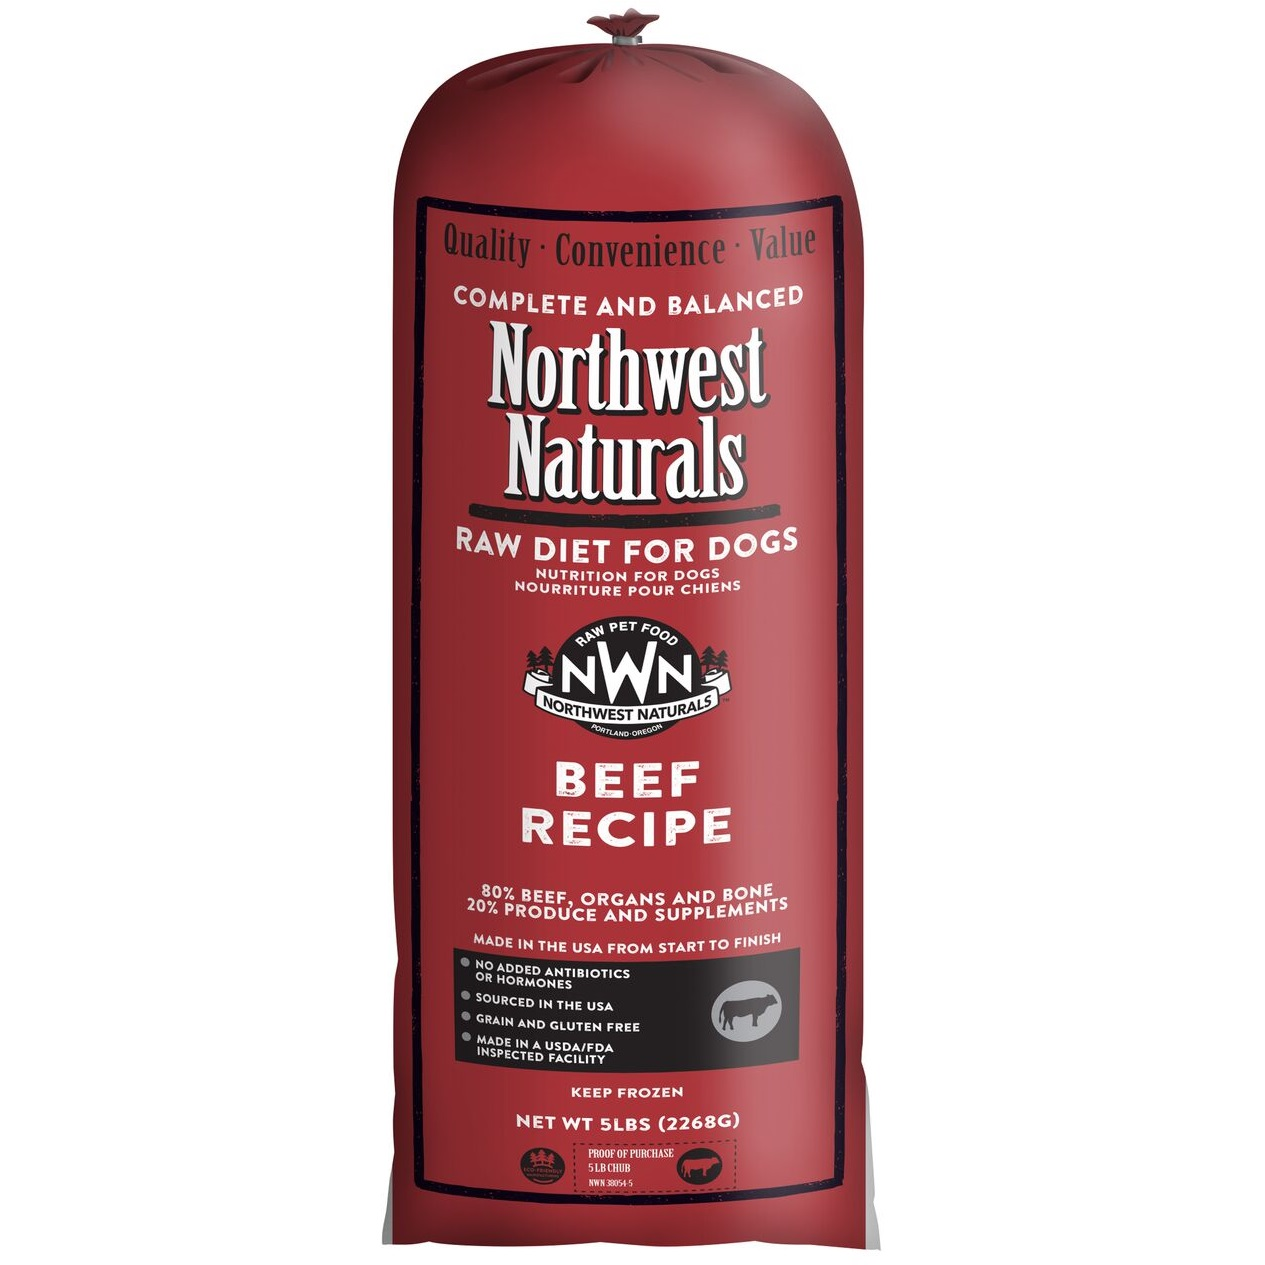 Northwest Naturals Raw Diet Grain-Free Beef Chub Roll Raw Frozen Dog Food